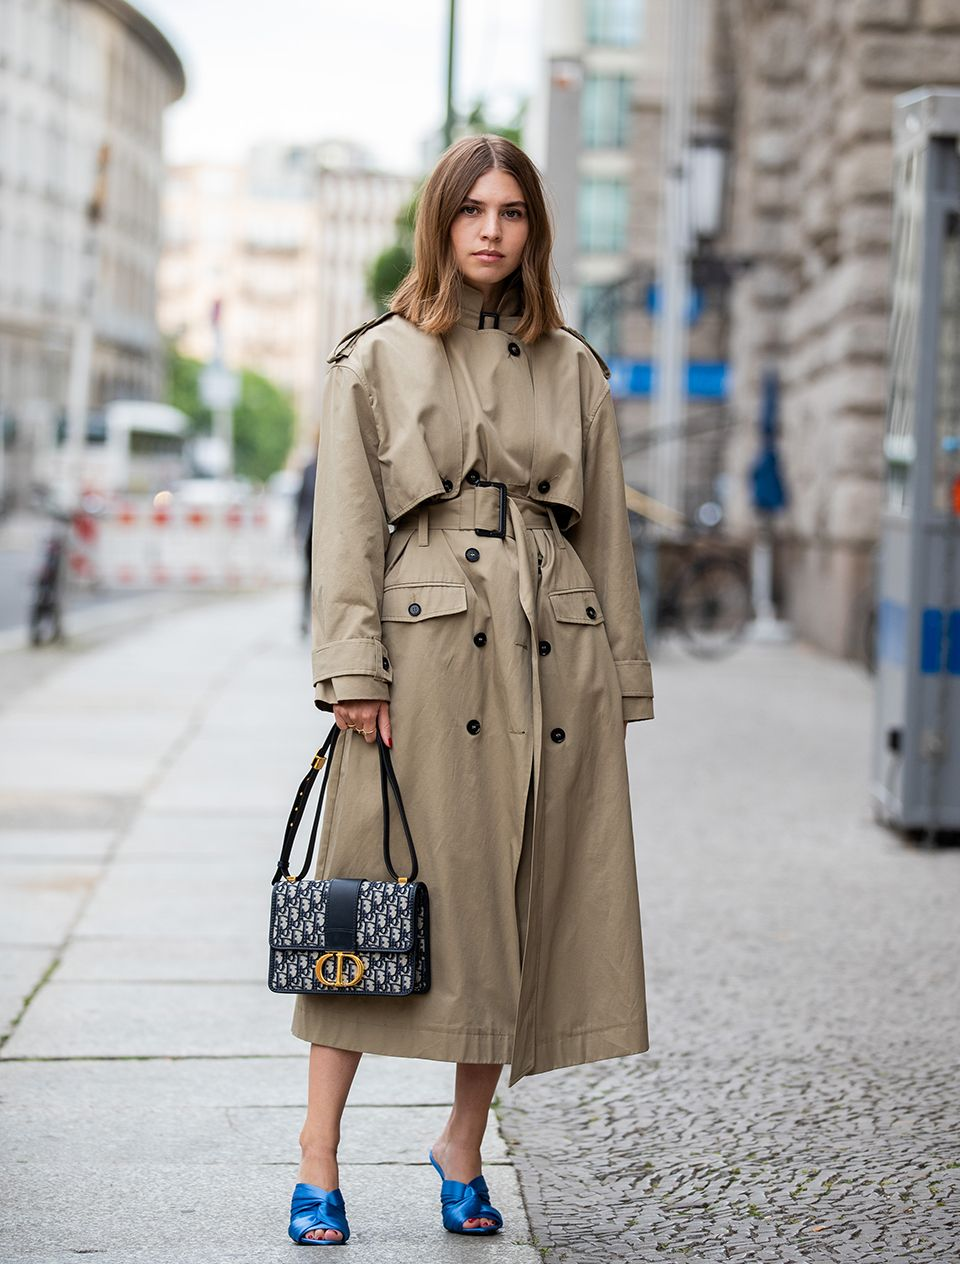 How to style a trench coat: wear it like a dress